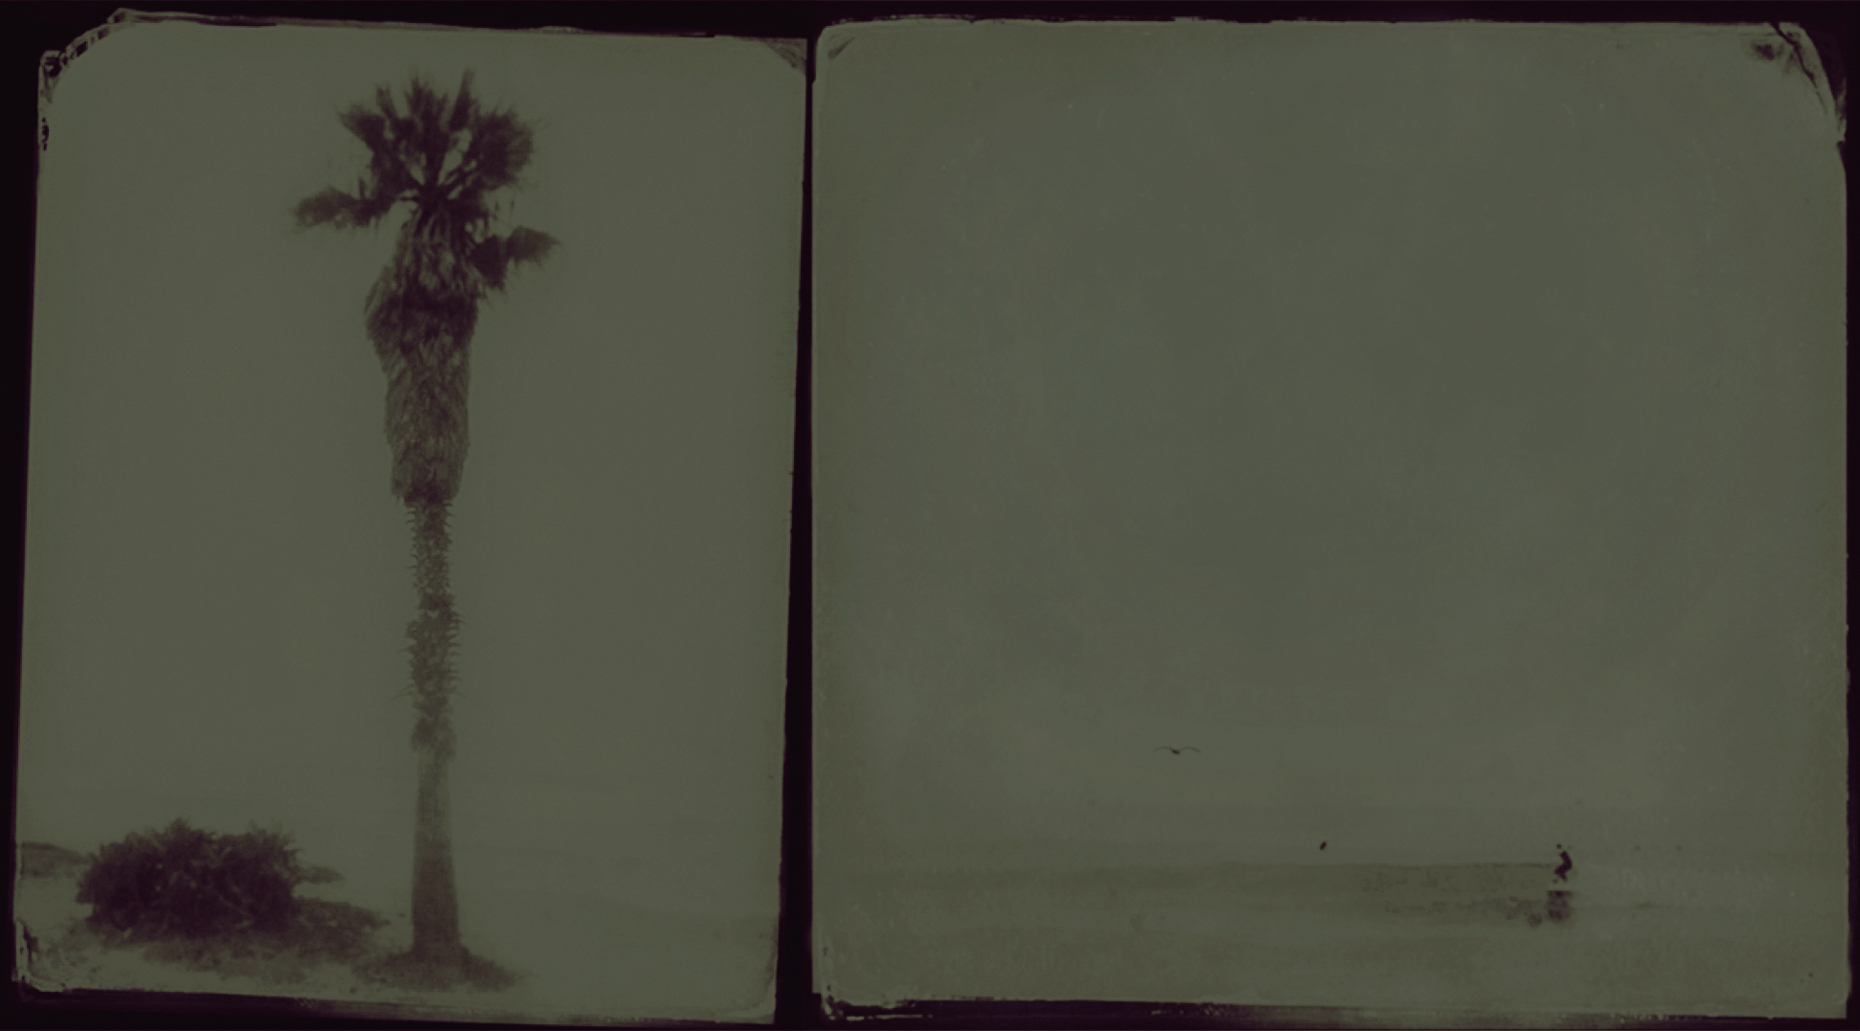 FinStudy: Inside/Outside (wet-plate sketch)